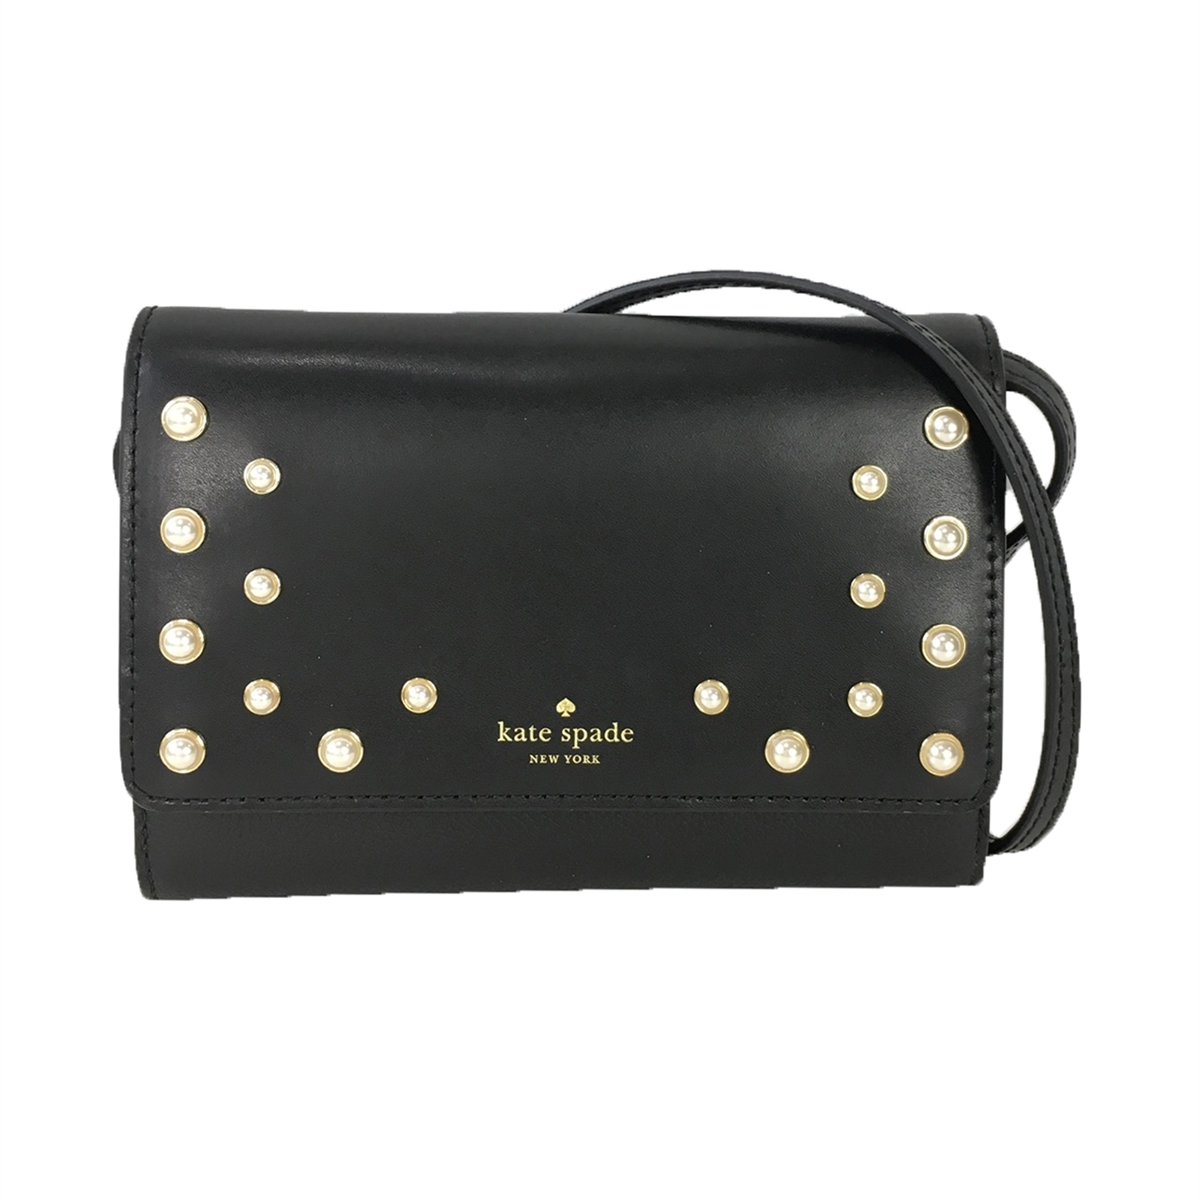 902d8a32e64a Kate Spade Pearl Summer Leather Wallet Clutch Crossbody Bag, Black